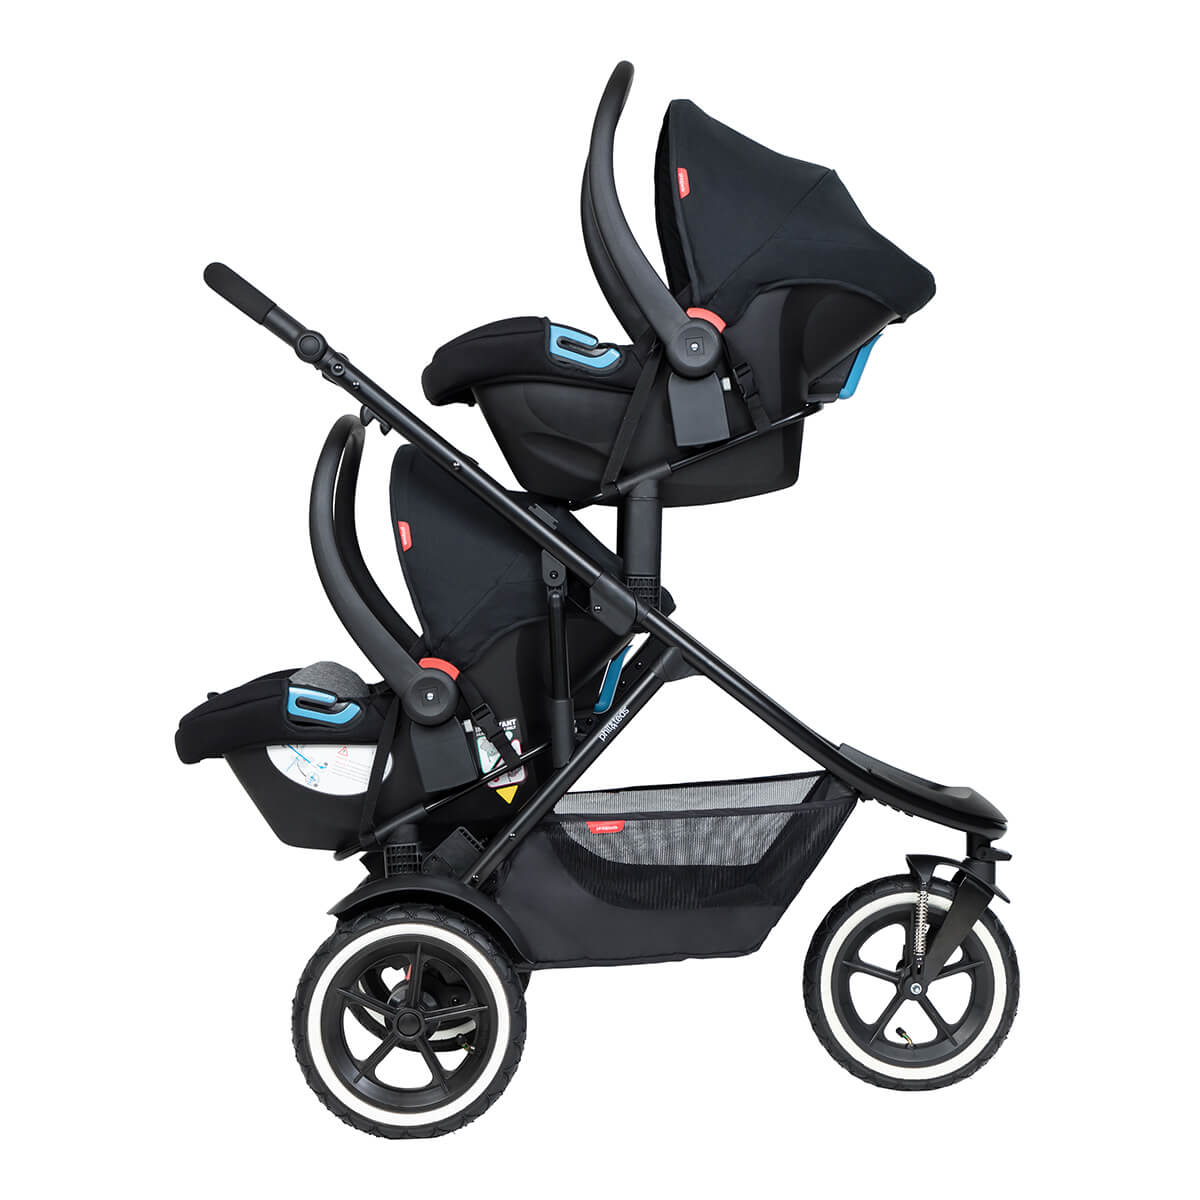 https://cdn.accentuate.io/4509901848653/19466204610754/philteds-sport-buggy-with-double-alpha-travel-system-v1626485414824.jpg?1200x1200